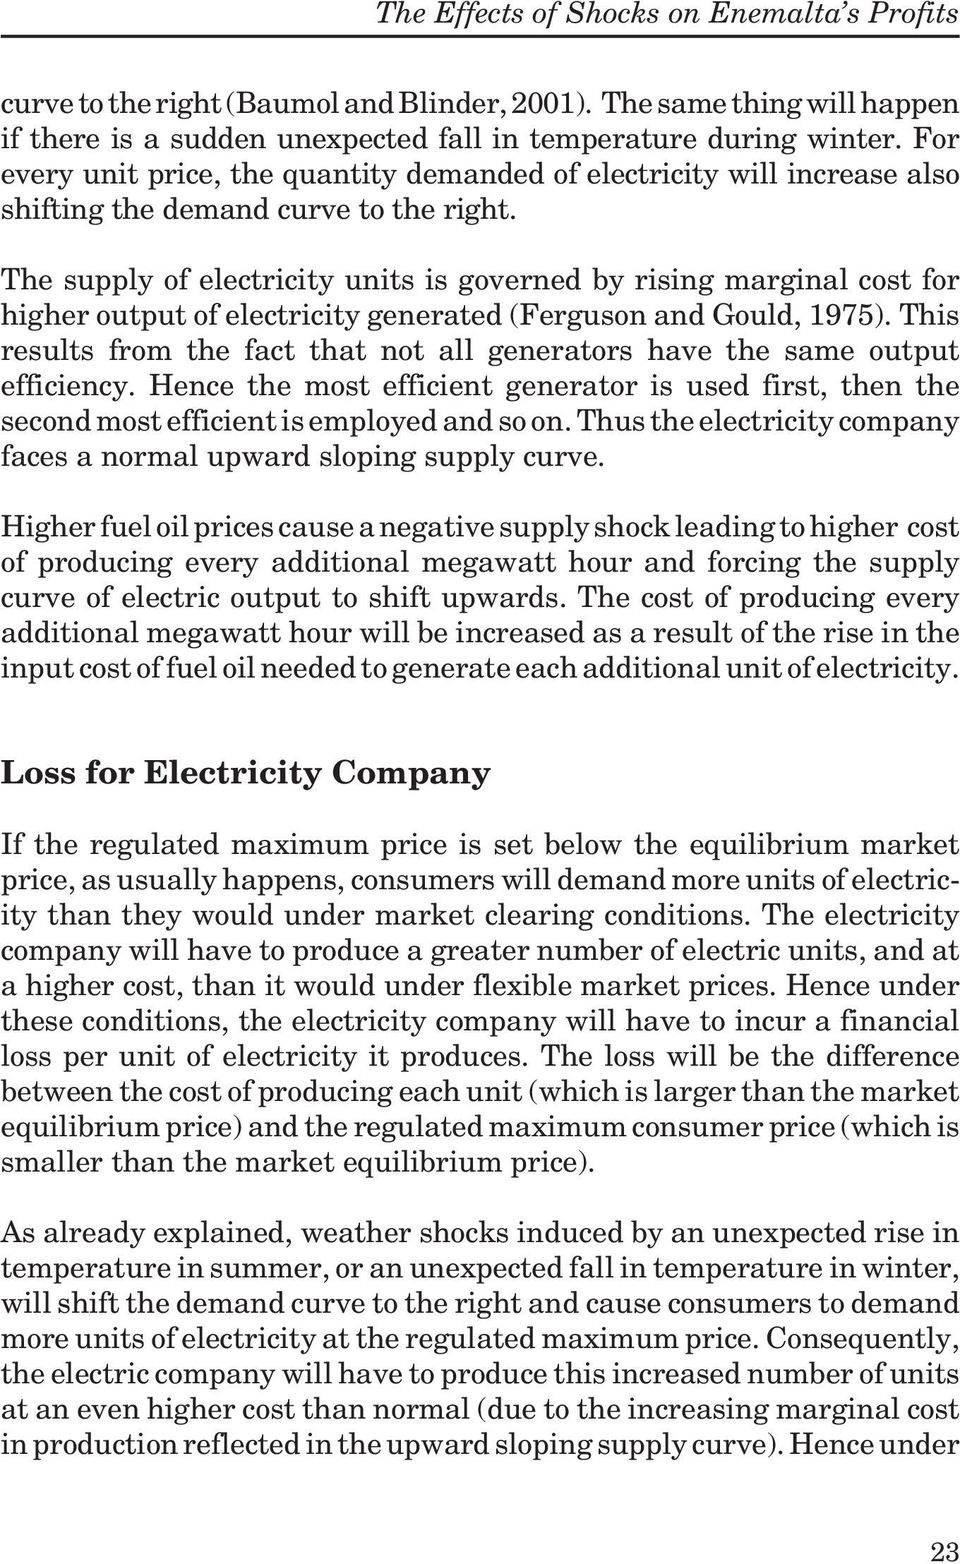 The supply of electricity units is governed by rising marginal cost for higher output of electricity generated (Ferguson and Gould, 1975).